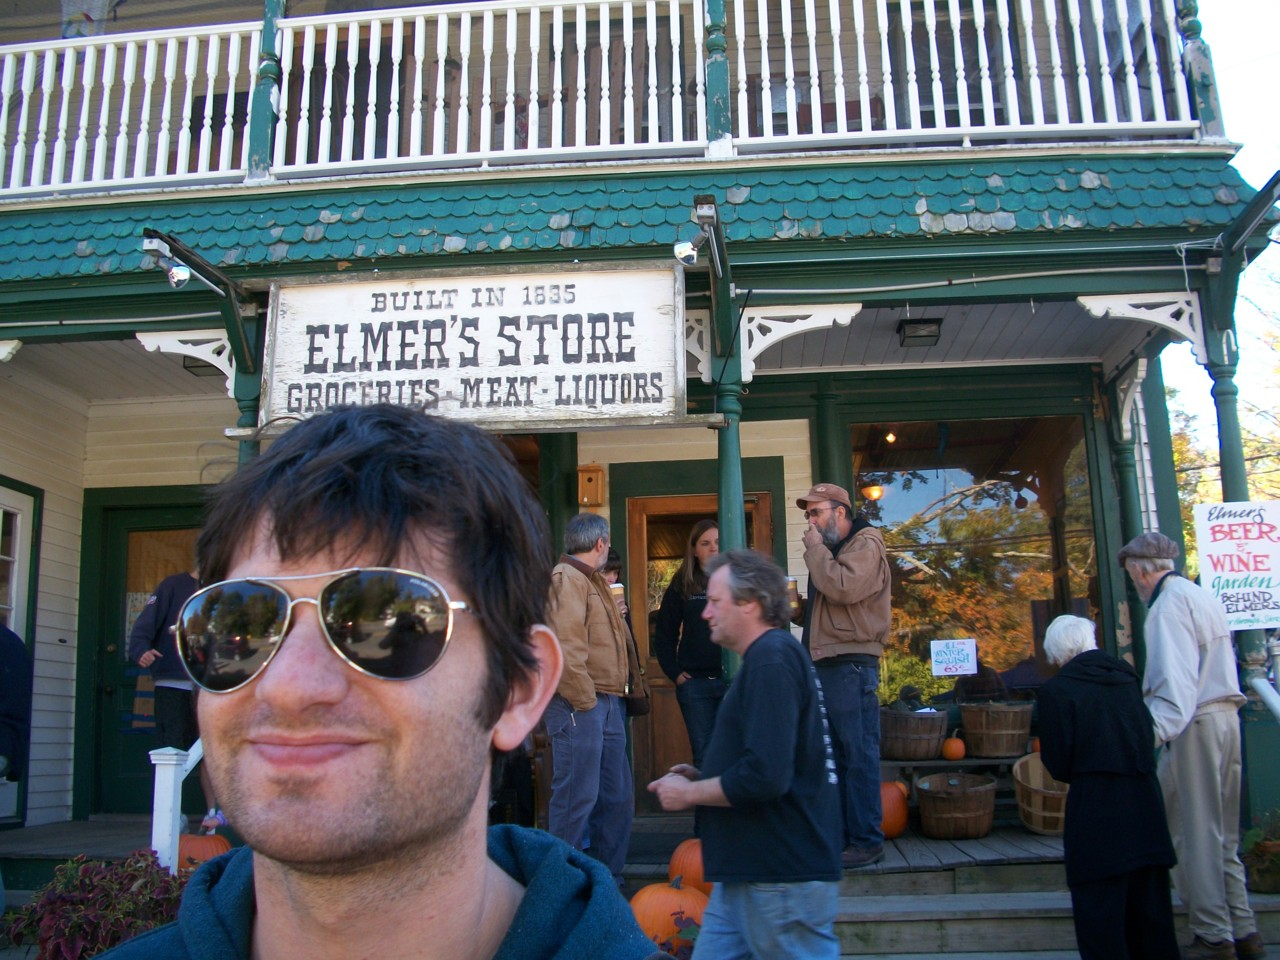 Every weekend, I want to have pancakes at Elmer's Store.